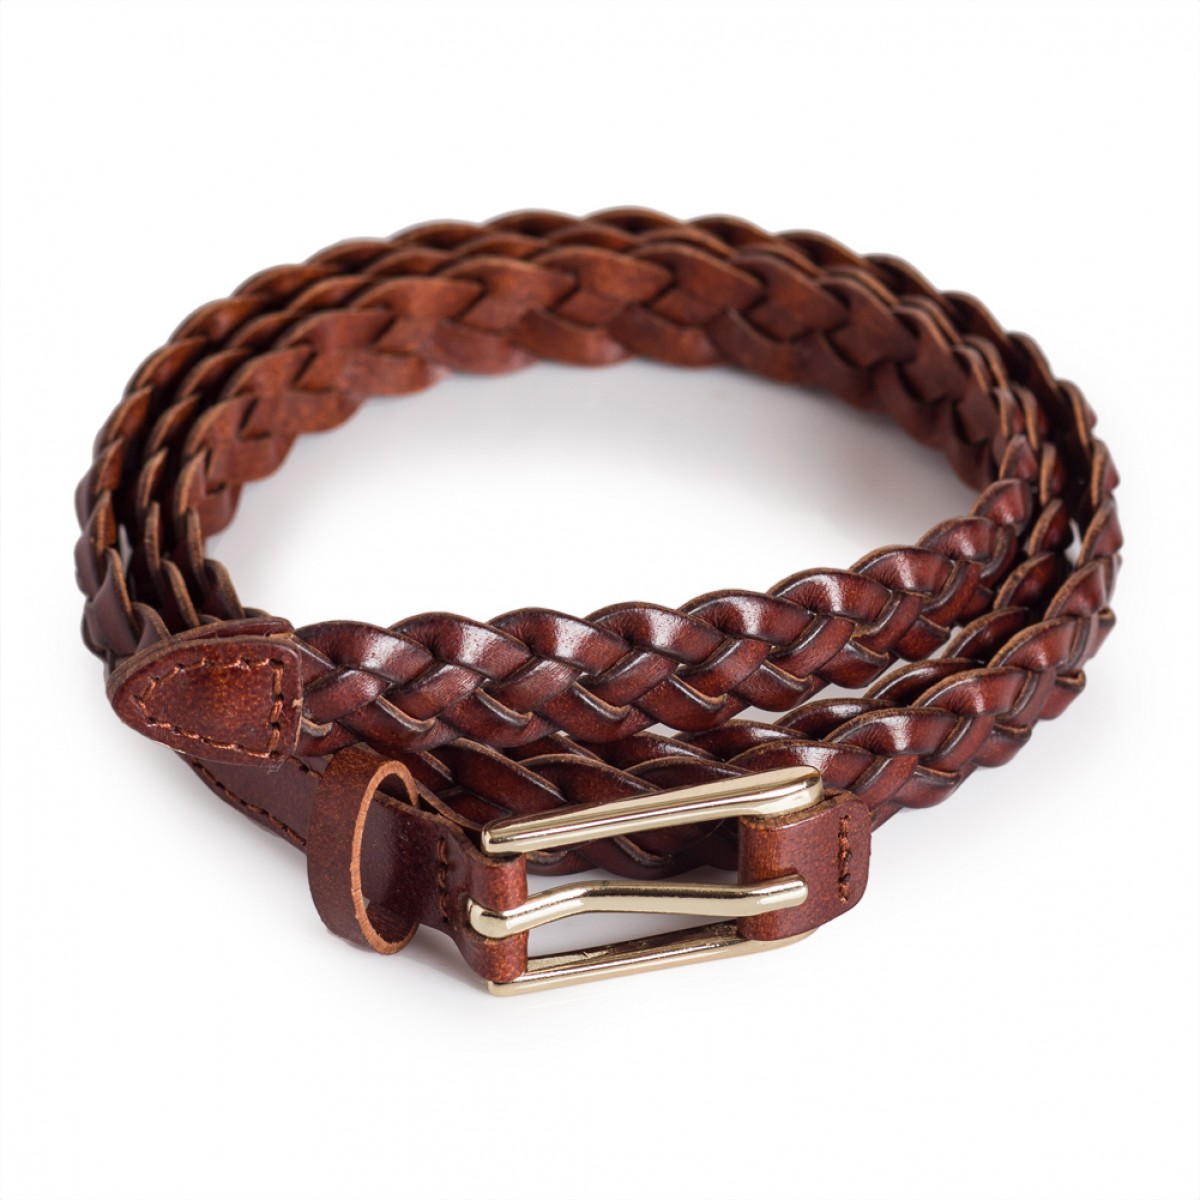 16493f4adeab6 Brown Skinny Braided Belt Fits Waist Sizes 28in - 35in